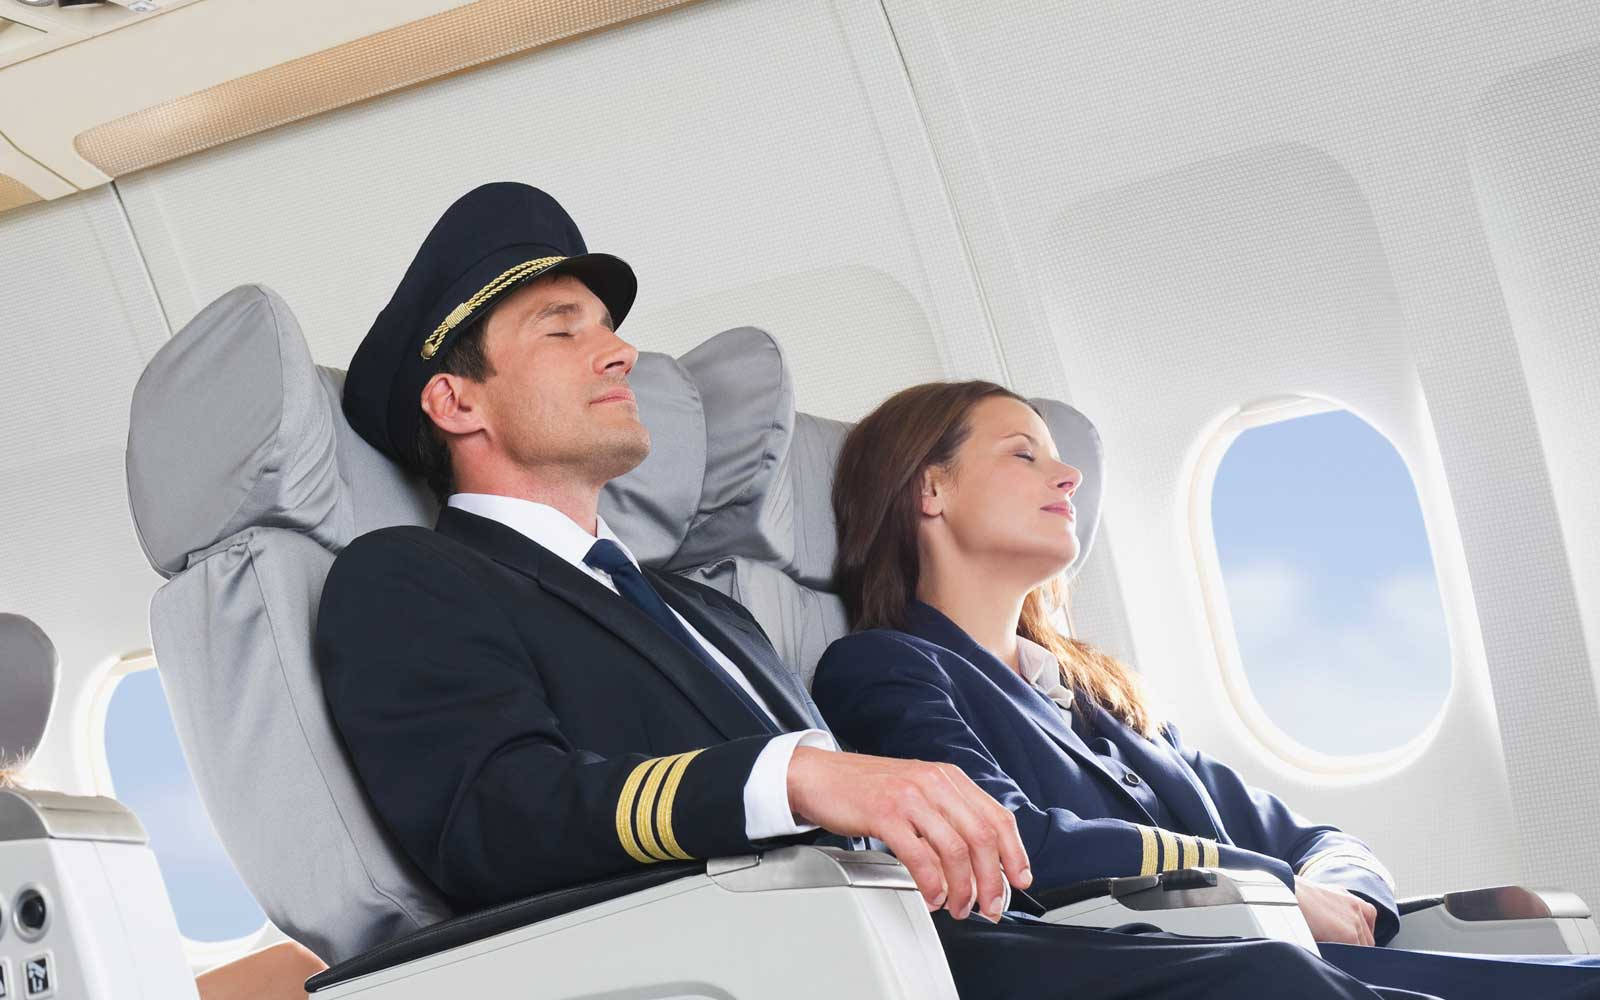 Don't be alarmed if you see your pilot resting on a flight as it's actually required by law.